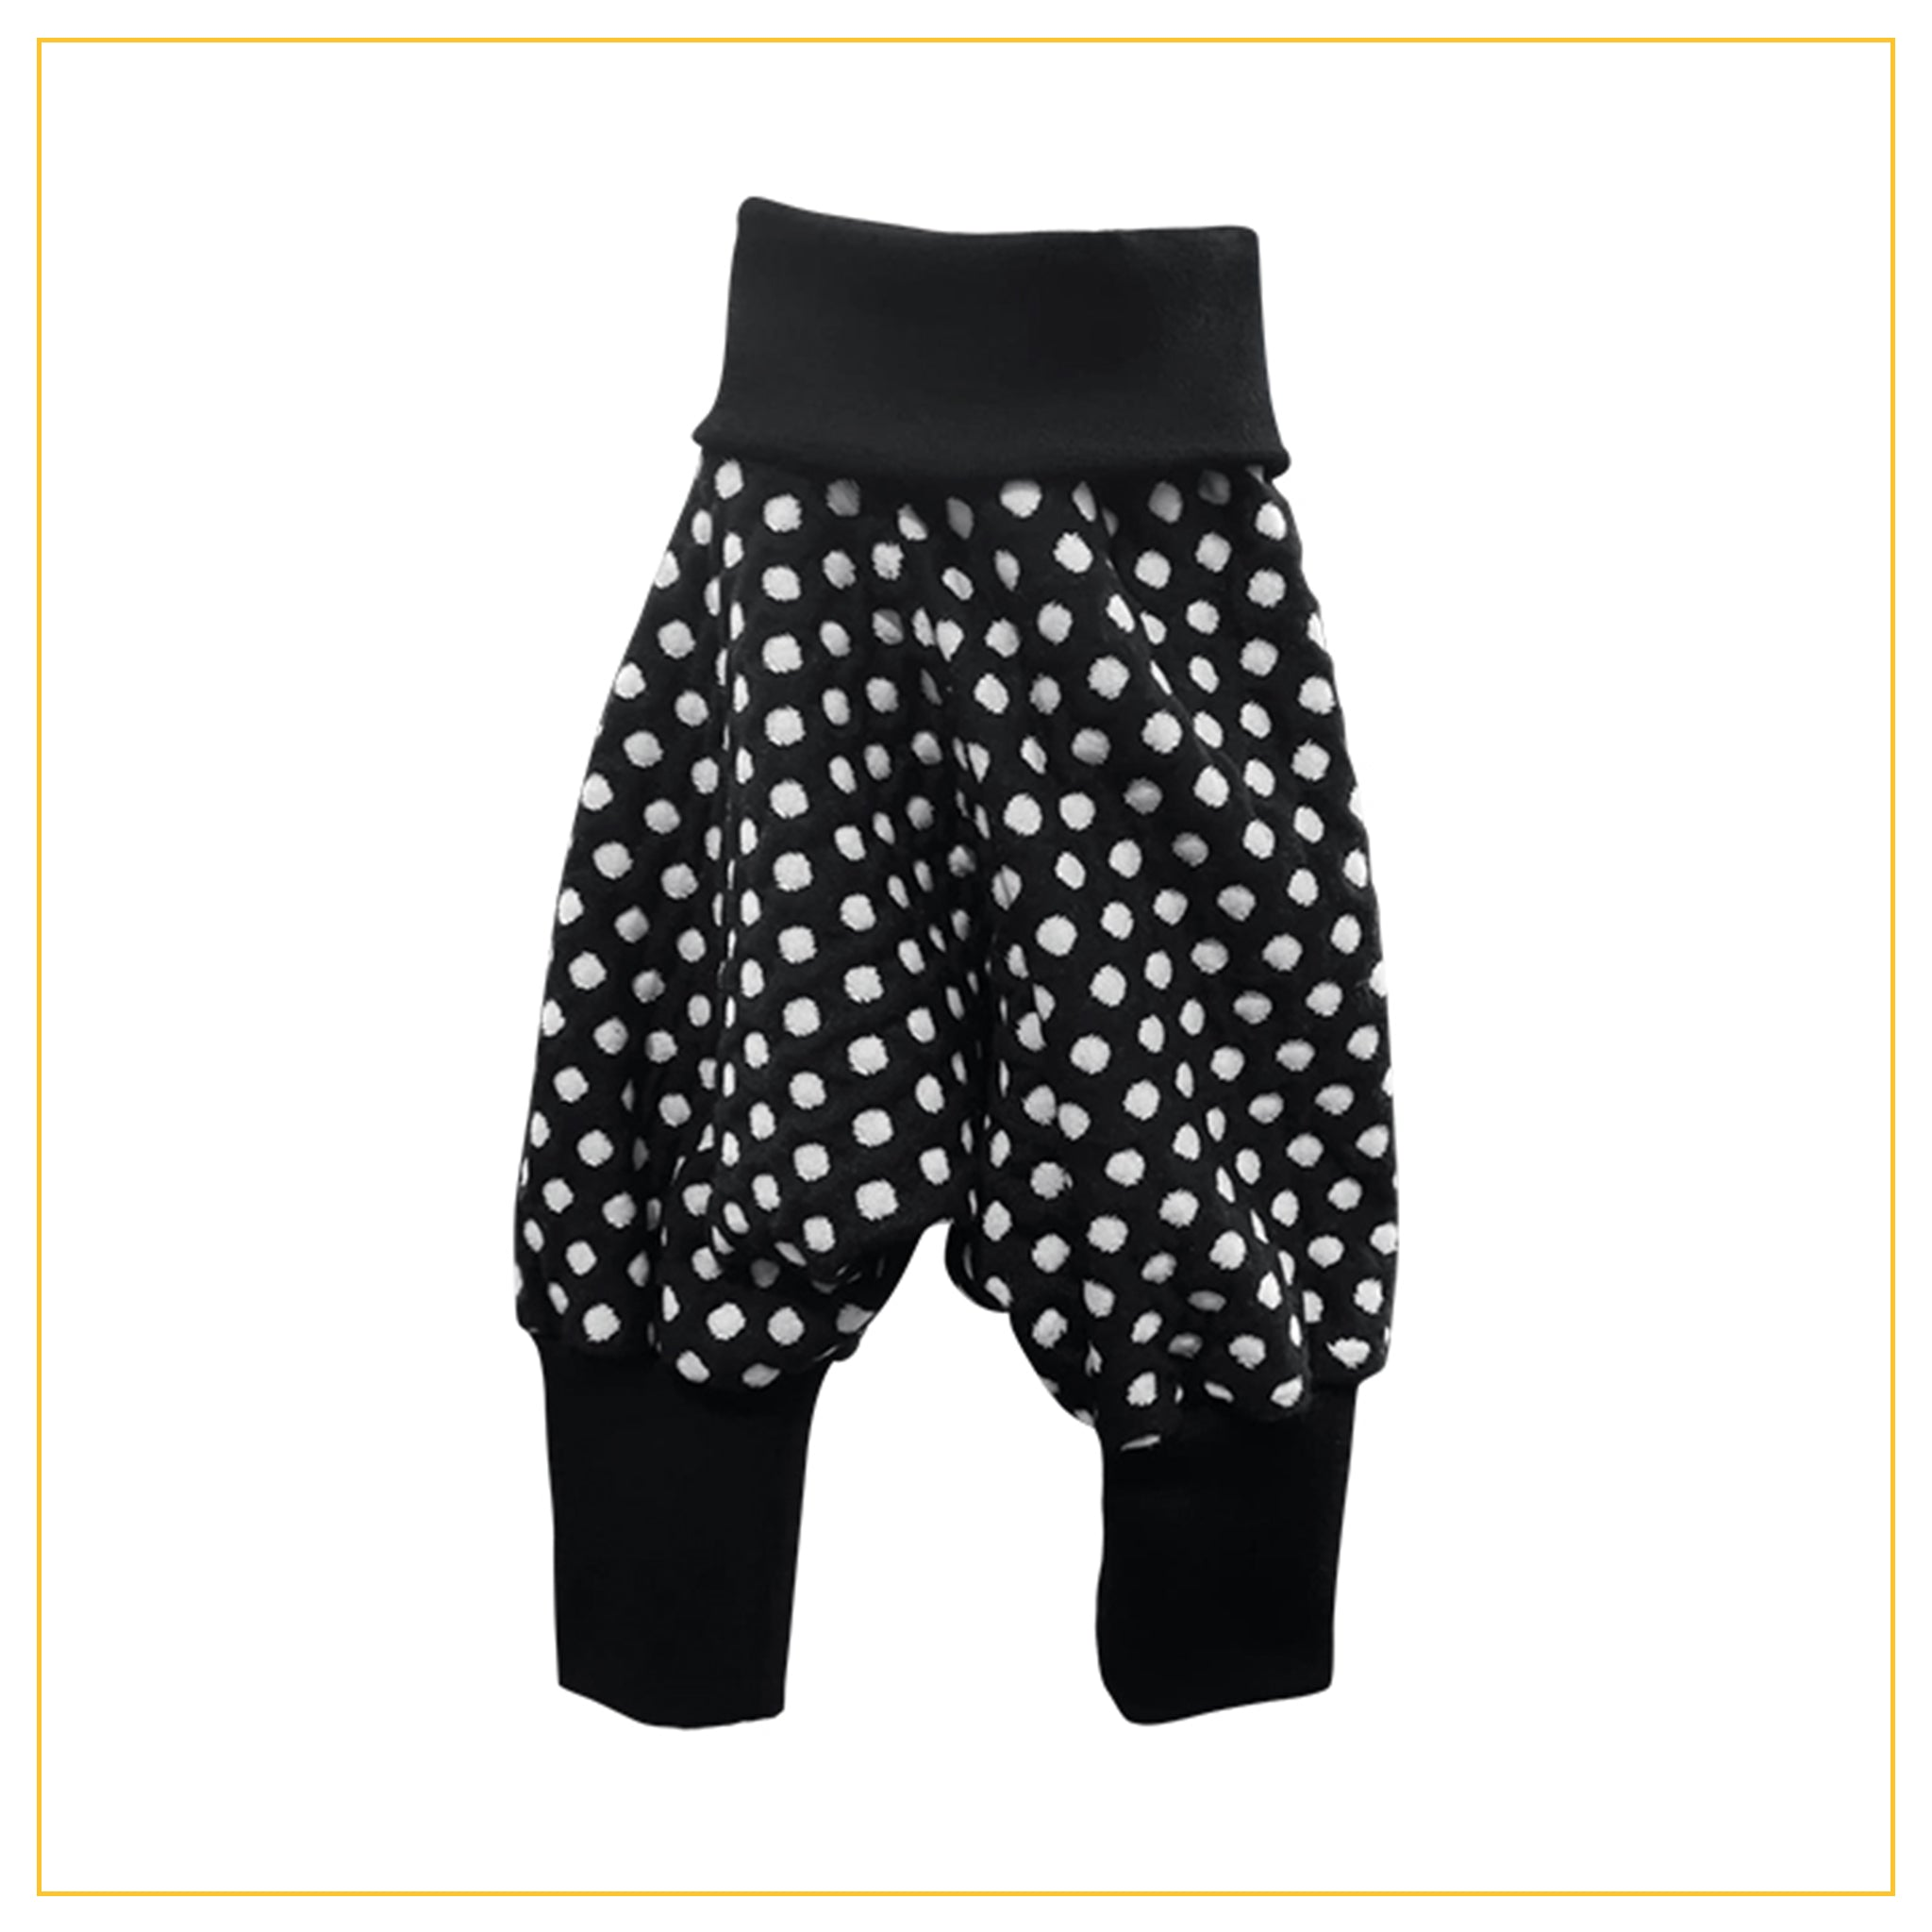 unisex kids harems pants in black and white polka dot print